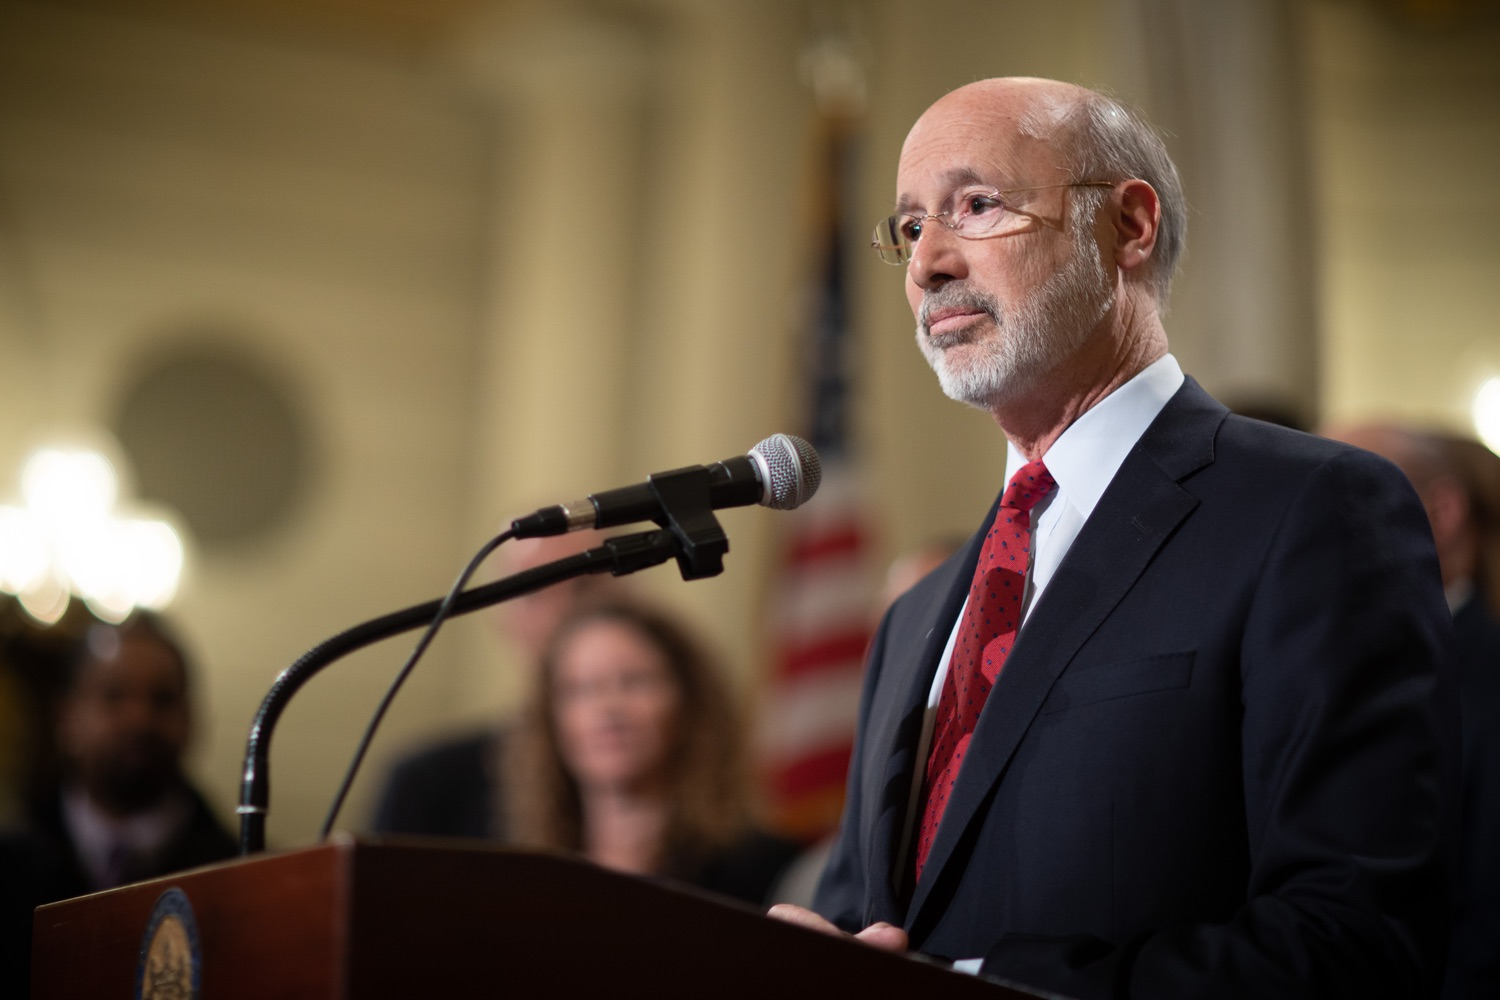 """<a href=""""https://filesource.wostreaming.net/commonwealthofpa/photo/17601_gov_right_on_crime_dz_020.jpg"""" target=""""_blank"""">⇣Download Photo<br></a>Governor Tom Wolf speaking at the event. Governor Tom Wolf was joined by Deputy Secretary of Corrections Christian Stephens and national criminal justice reform advocates today in the Capitol Rotunda to push for commonsense probation reforms that address probation sentences and probation lengths.  Harrisburg, PA  November 18, 2019"""